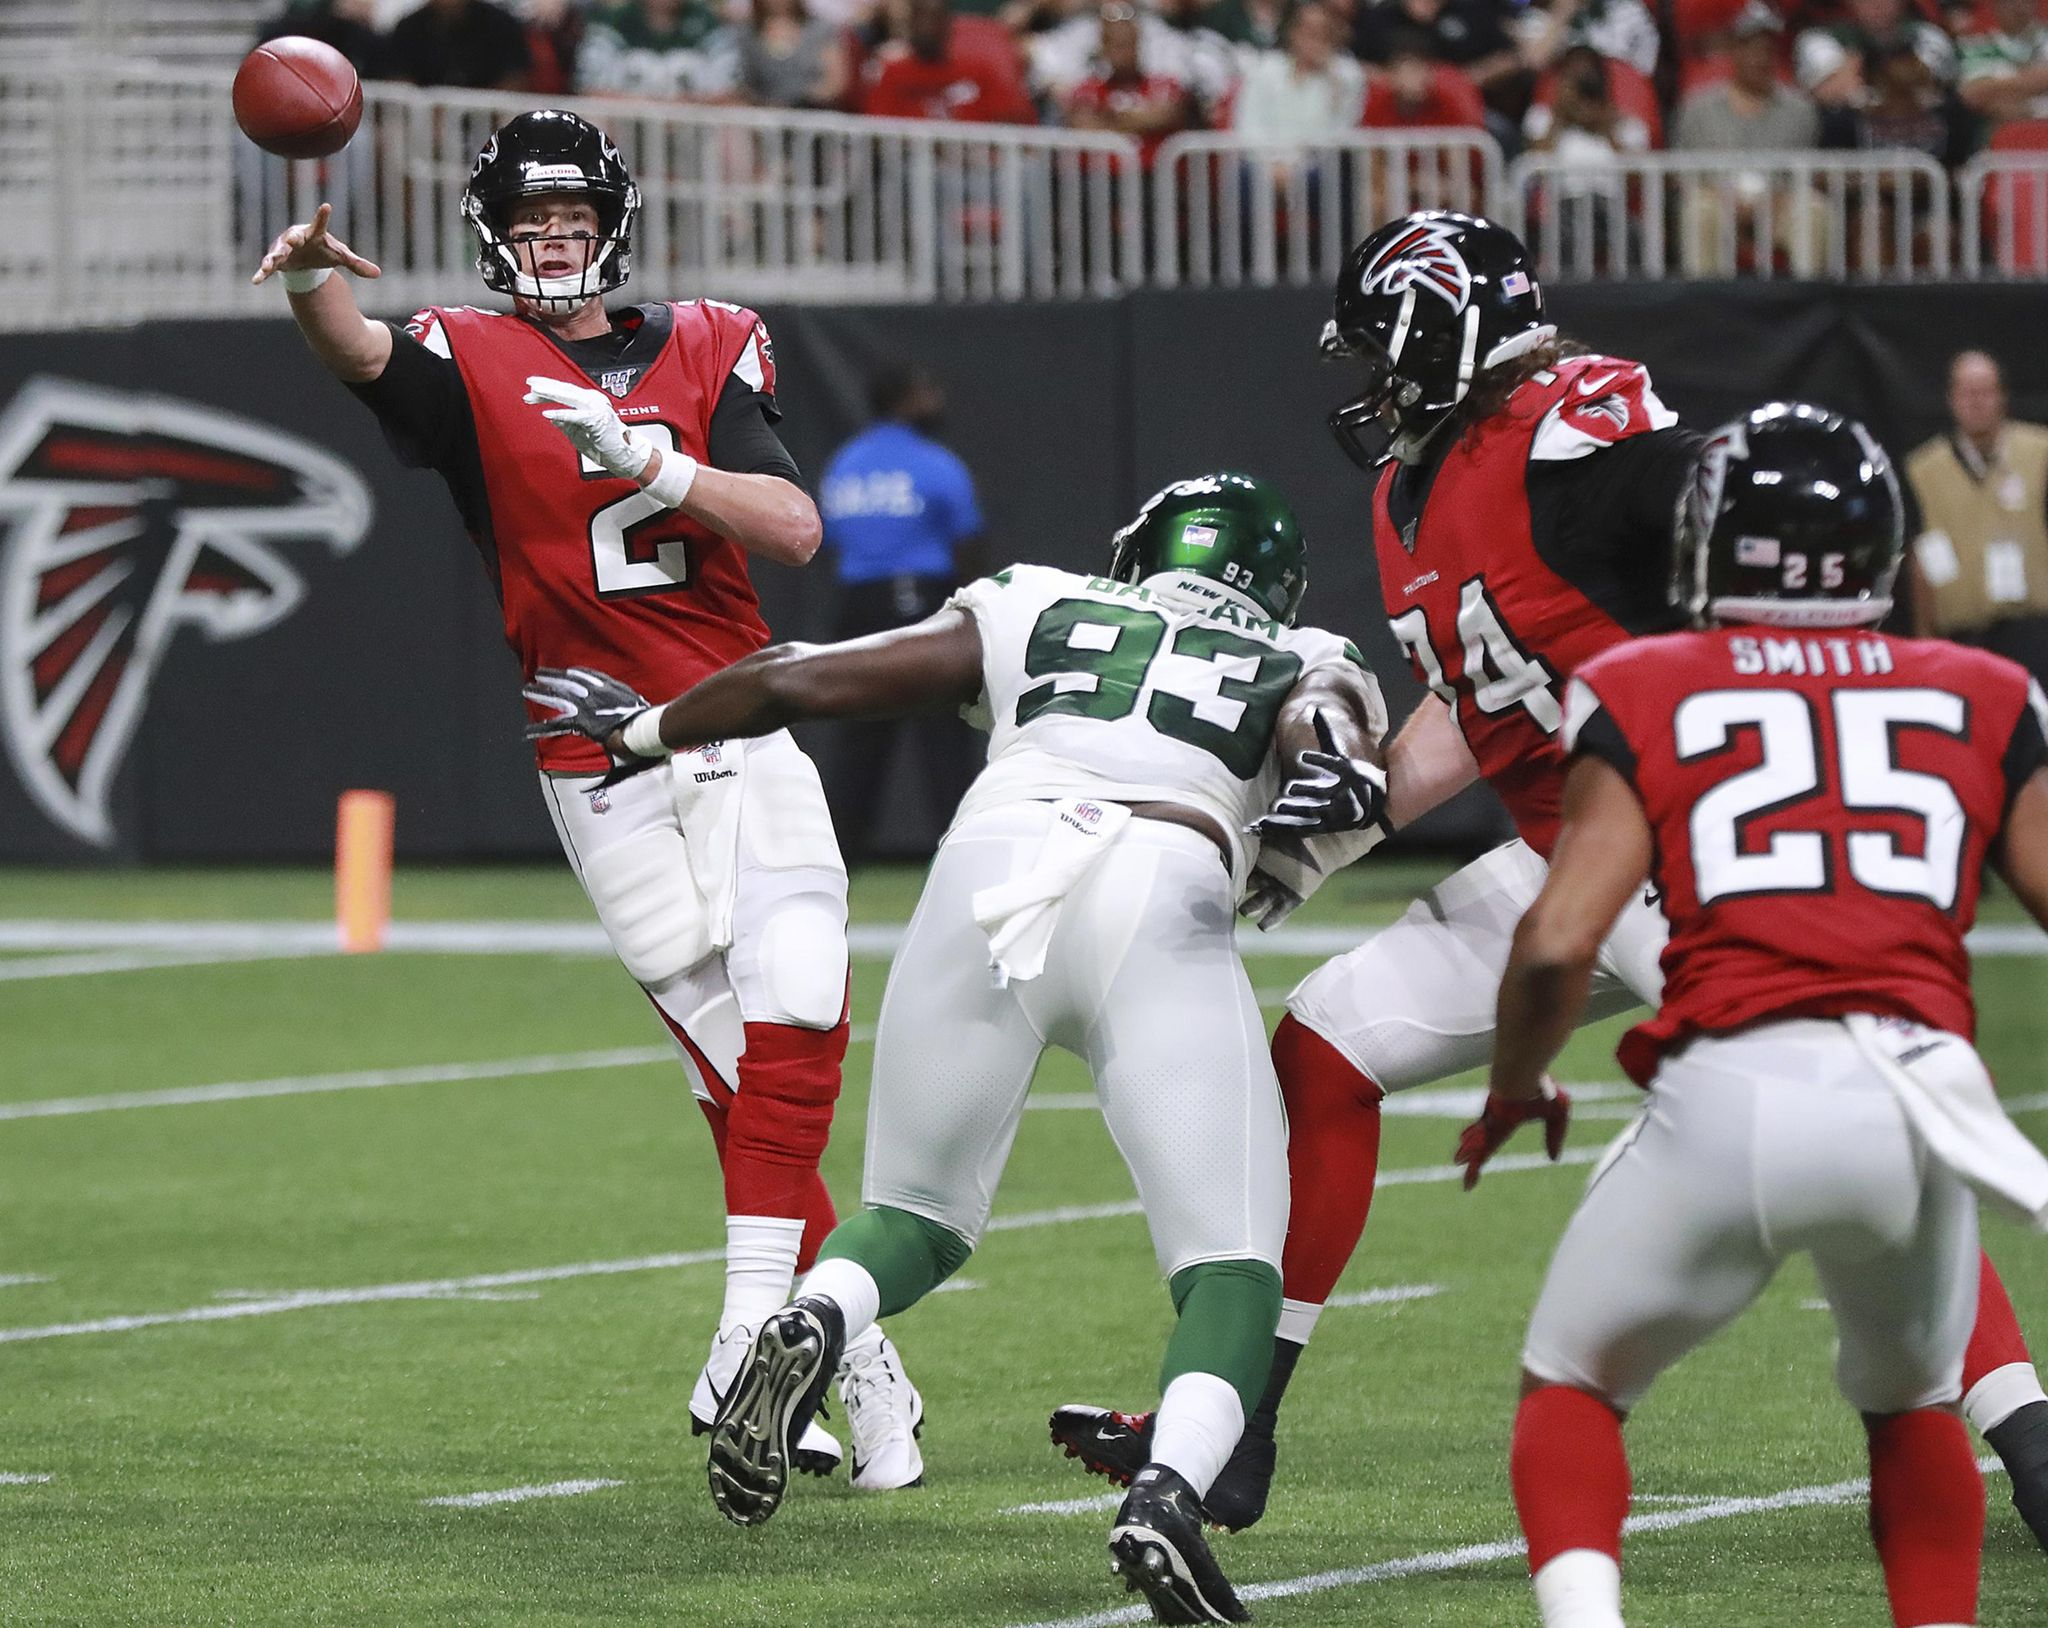 Jets_falcons_football_00498_s2048x1628